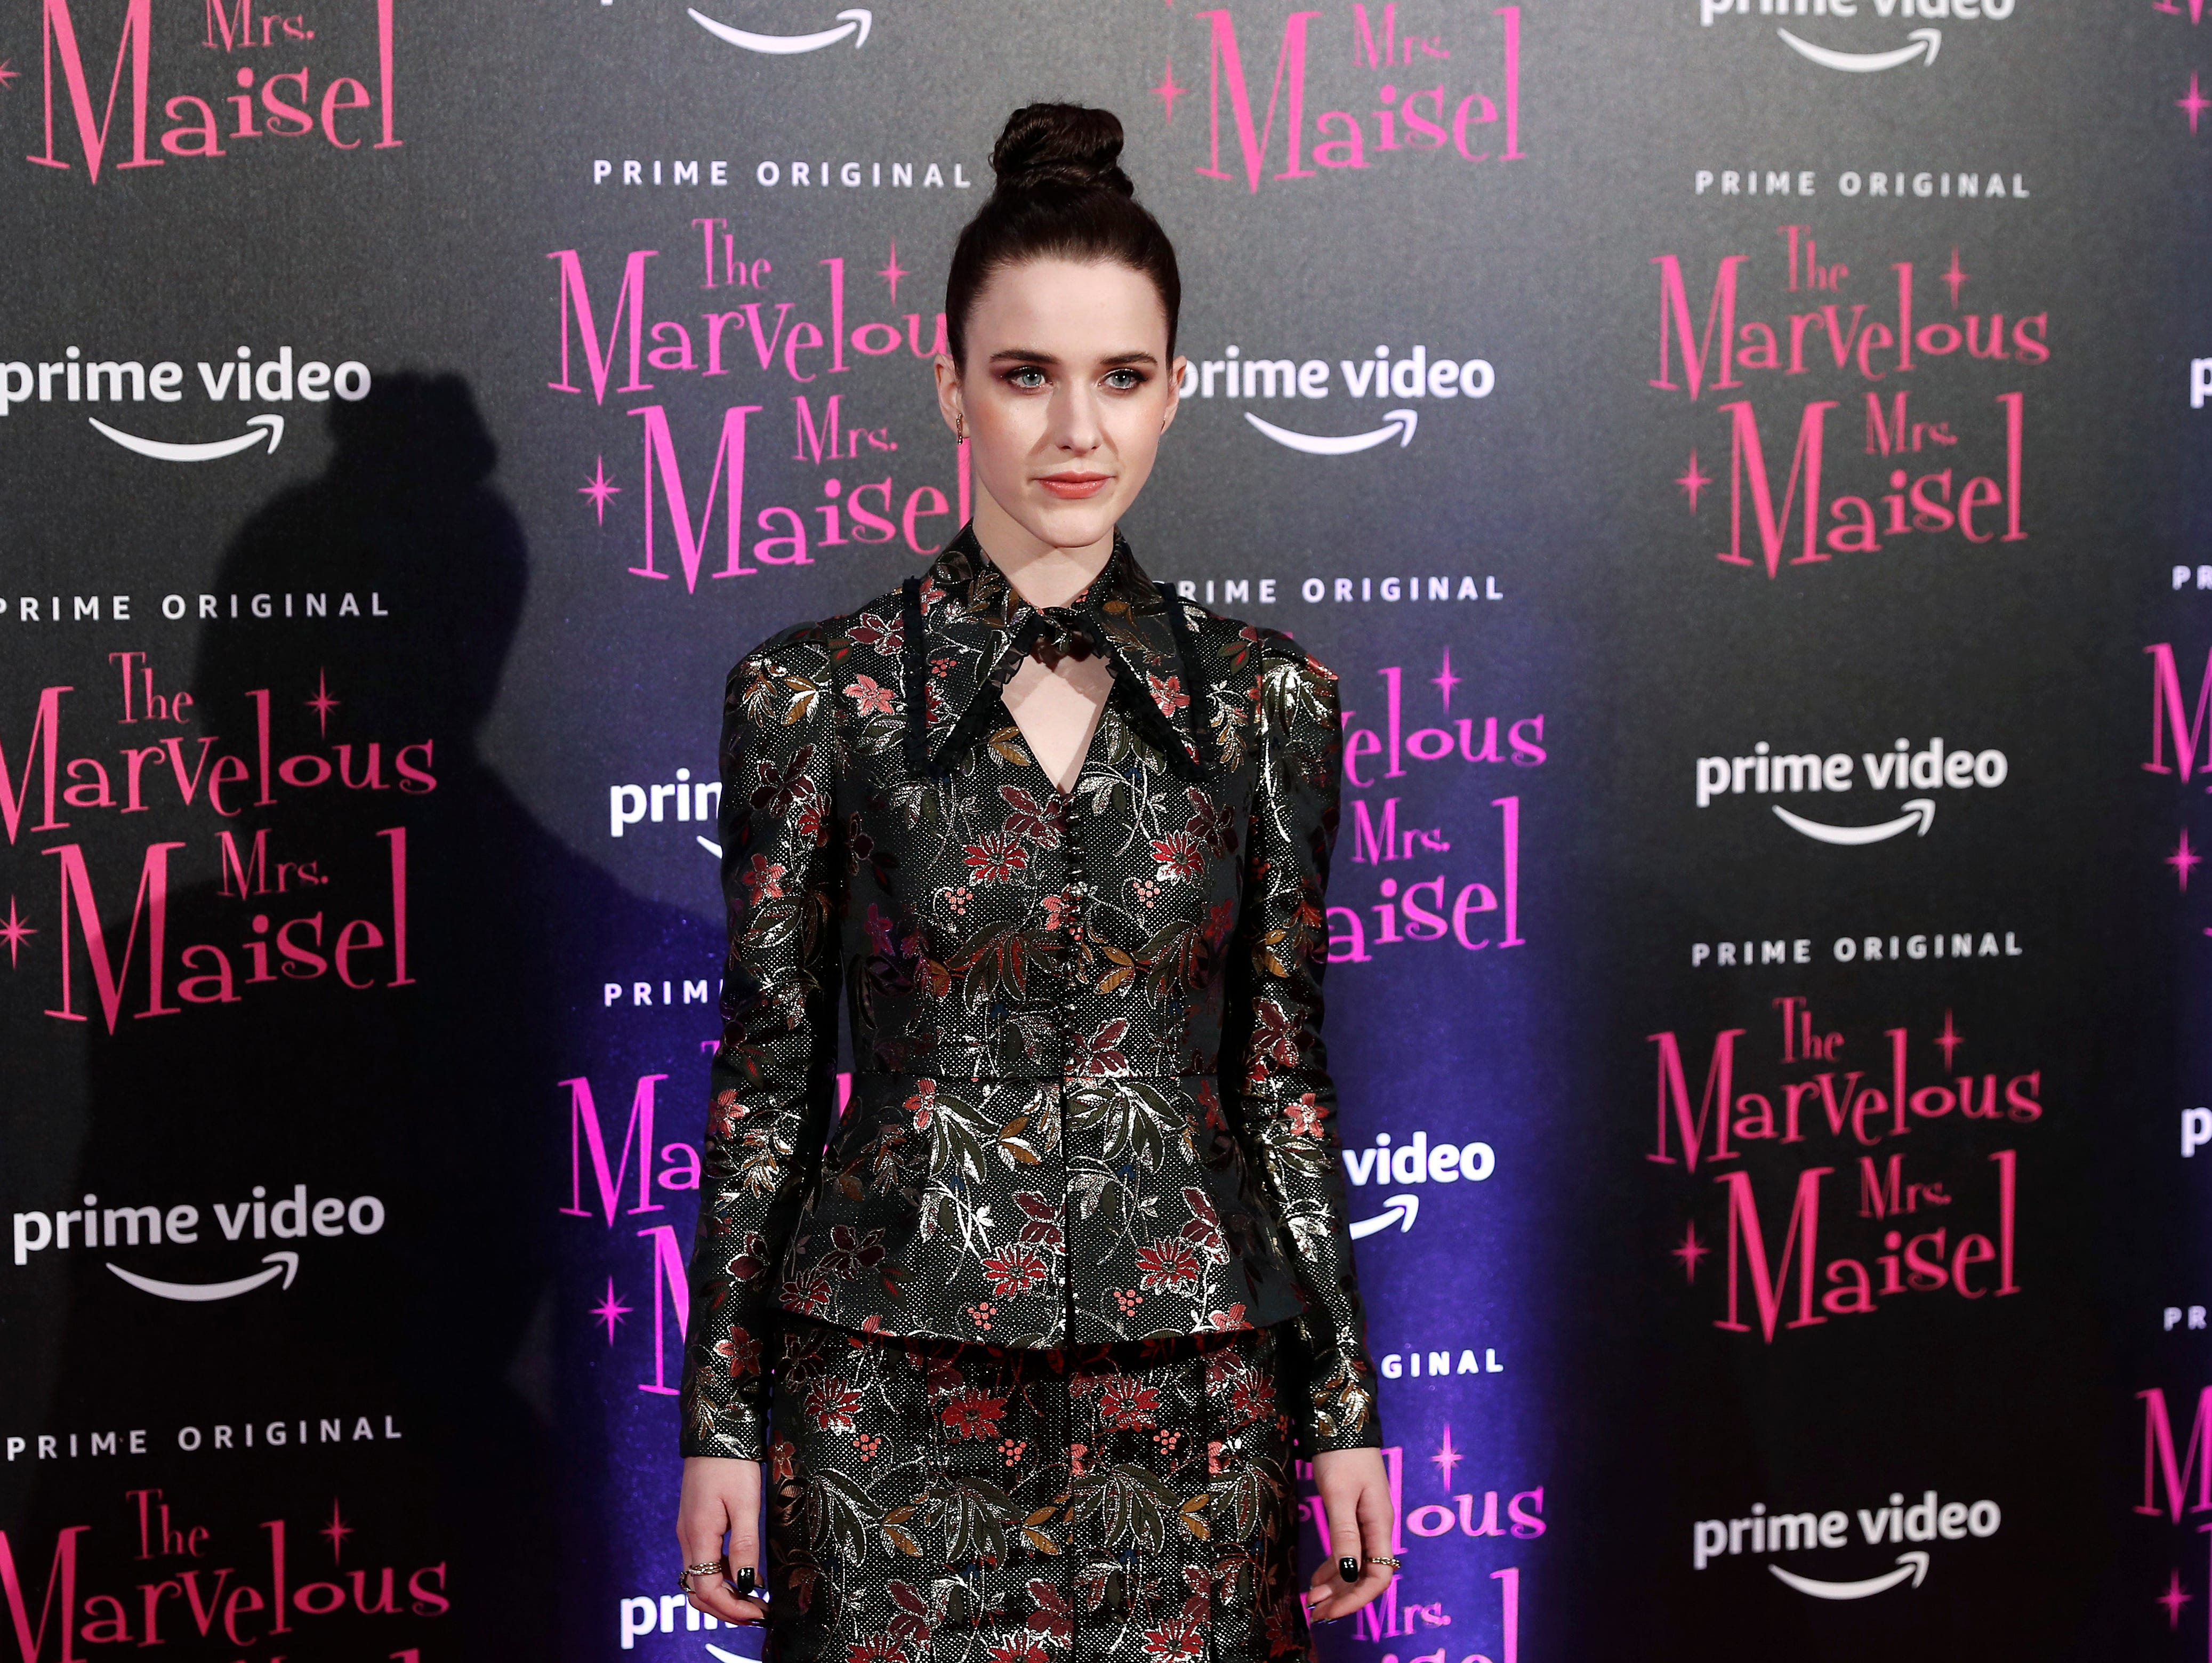 """Actress Rachel Brosnahan poses for photographers at the European Premiere of """"The Marvelous Mrs. Maisel"""" season 2, in Milan, Italy, Monday, Dec. 3, 2018."""